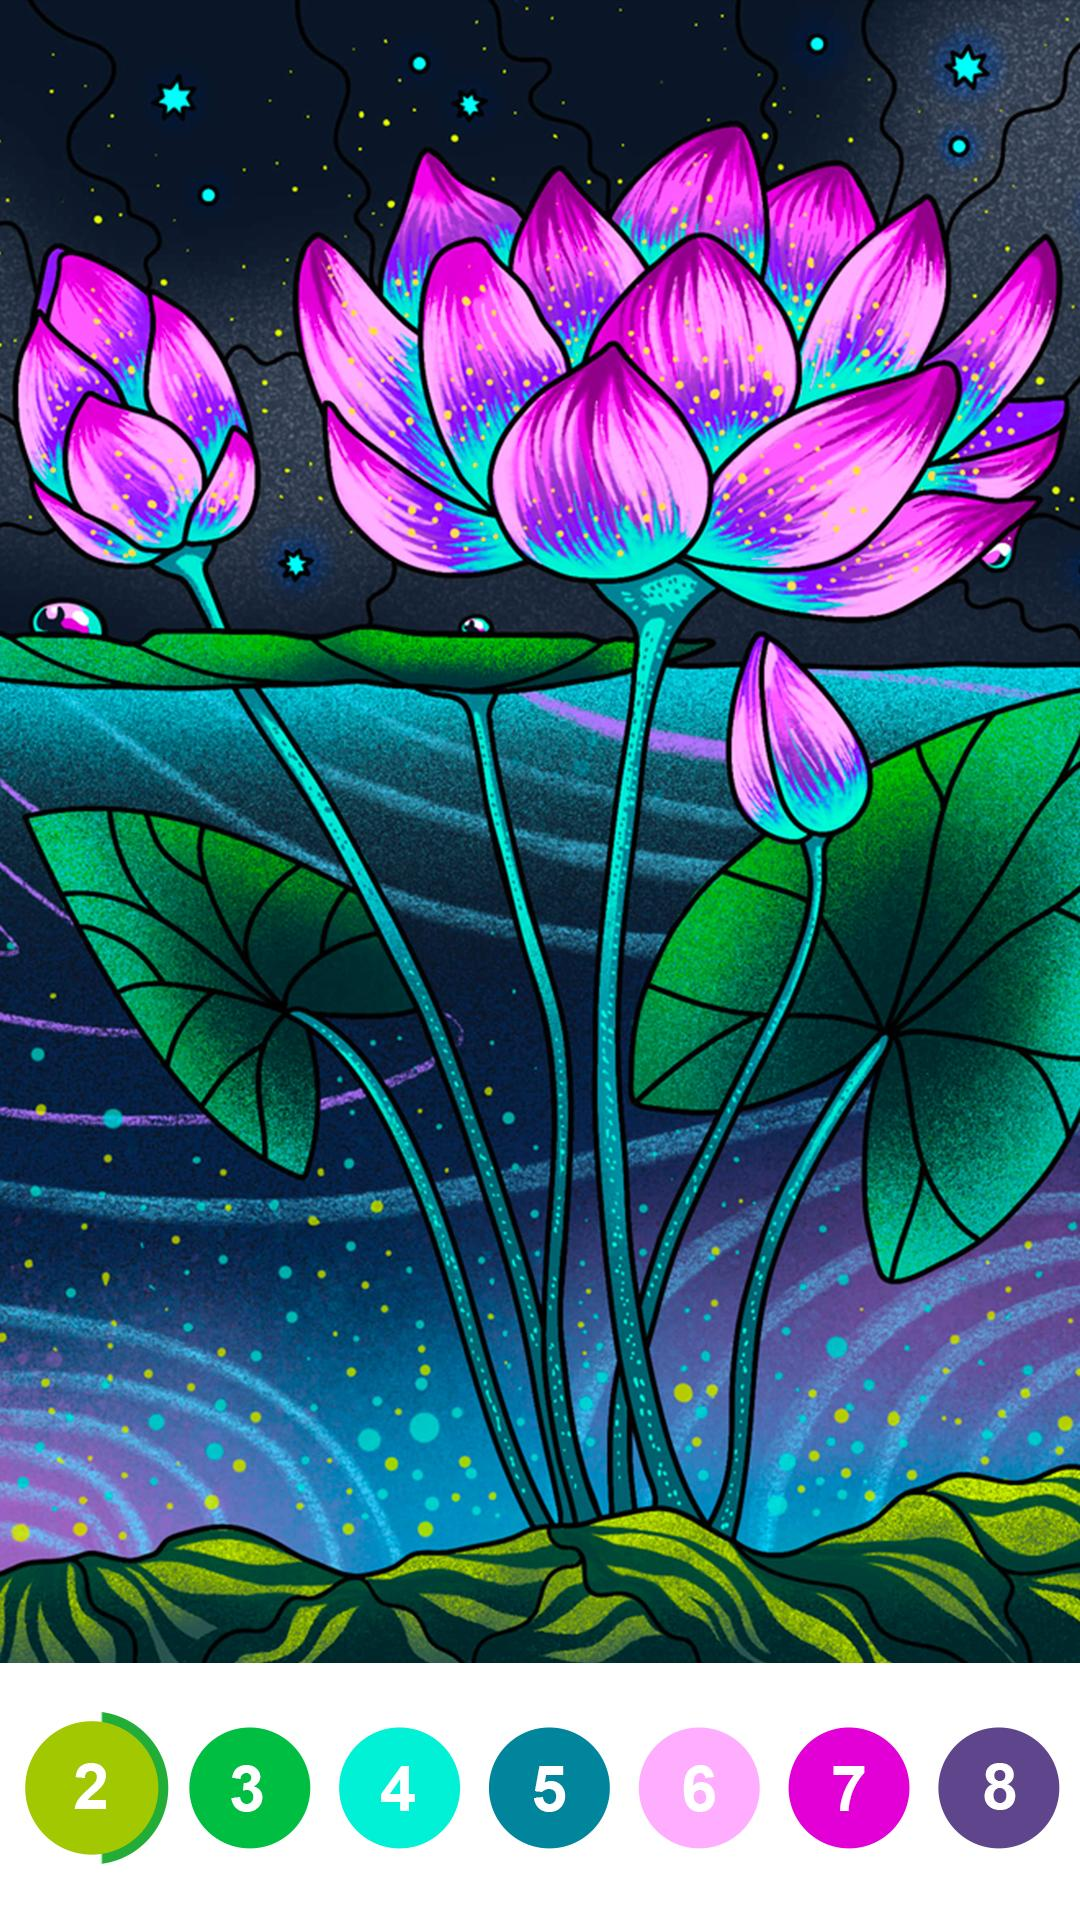 Paint By Number Free Coloring Book & Puzzle Game 2.36.2 Screenshot 1